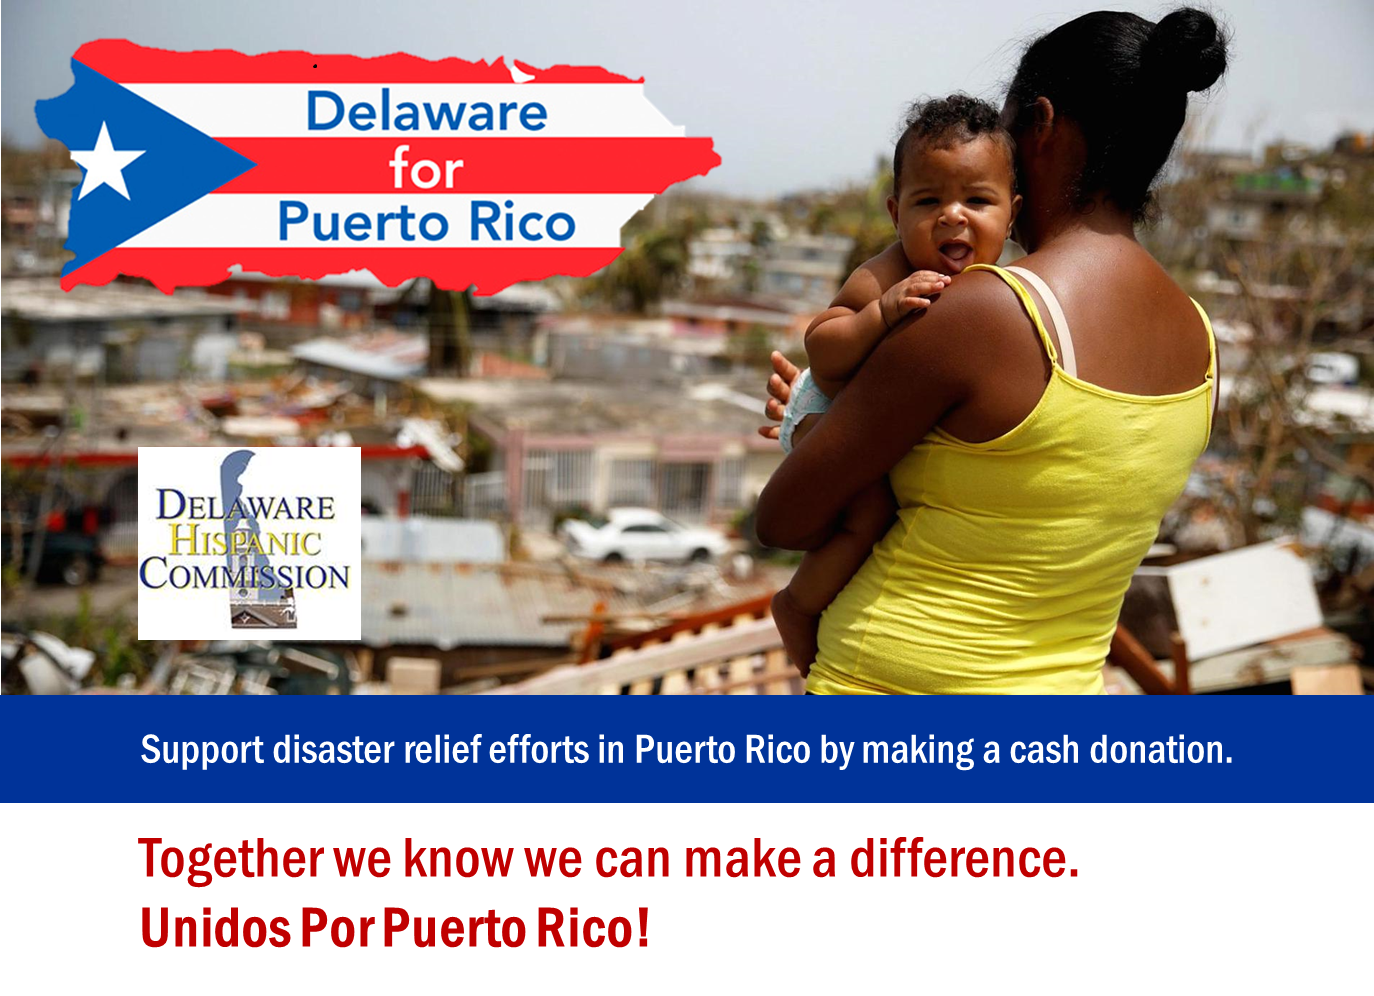 Delaware Hispanic Commission and United Way of Delaware